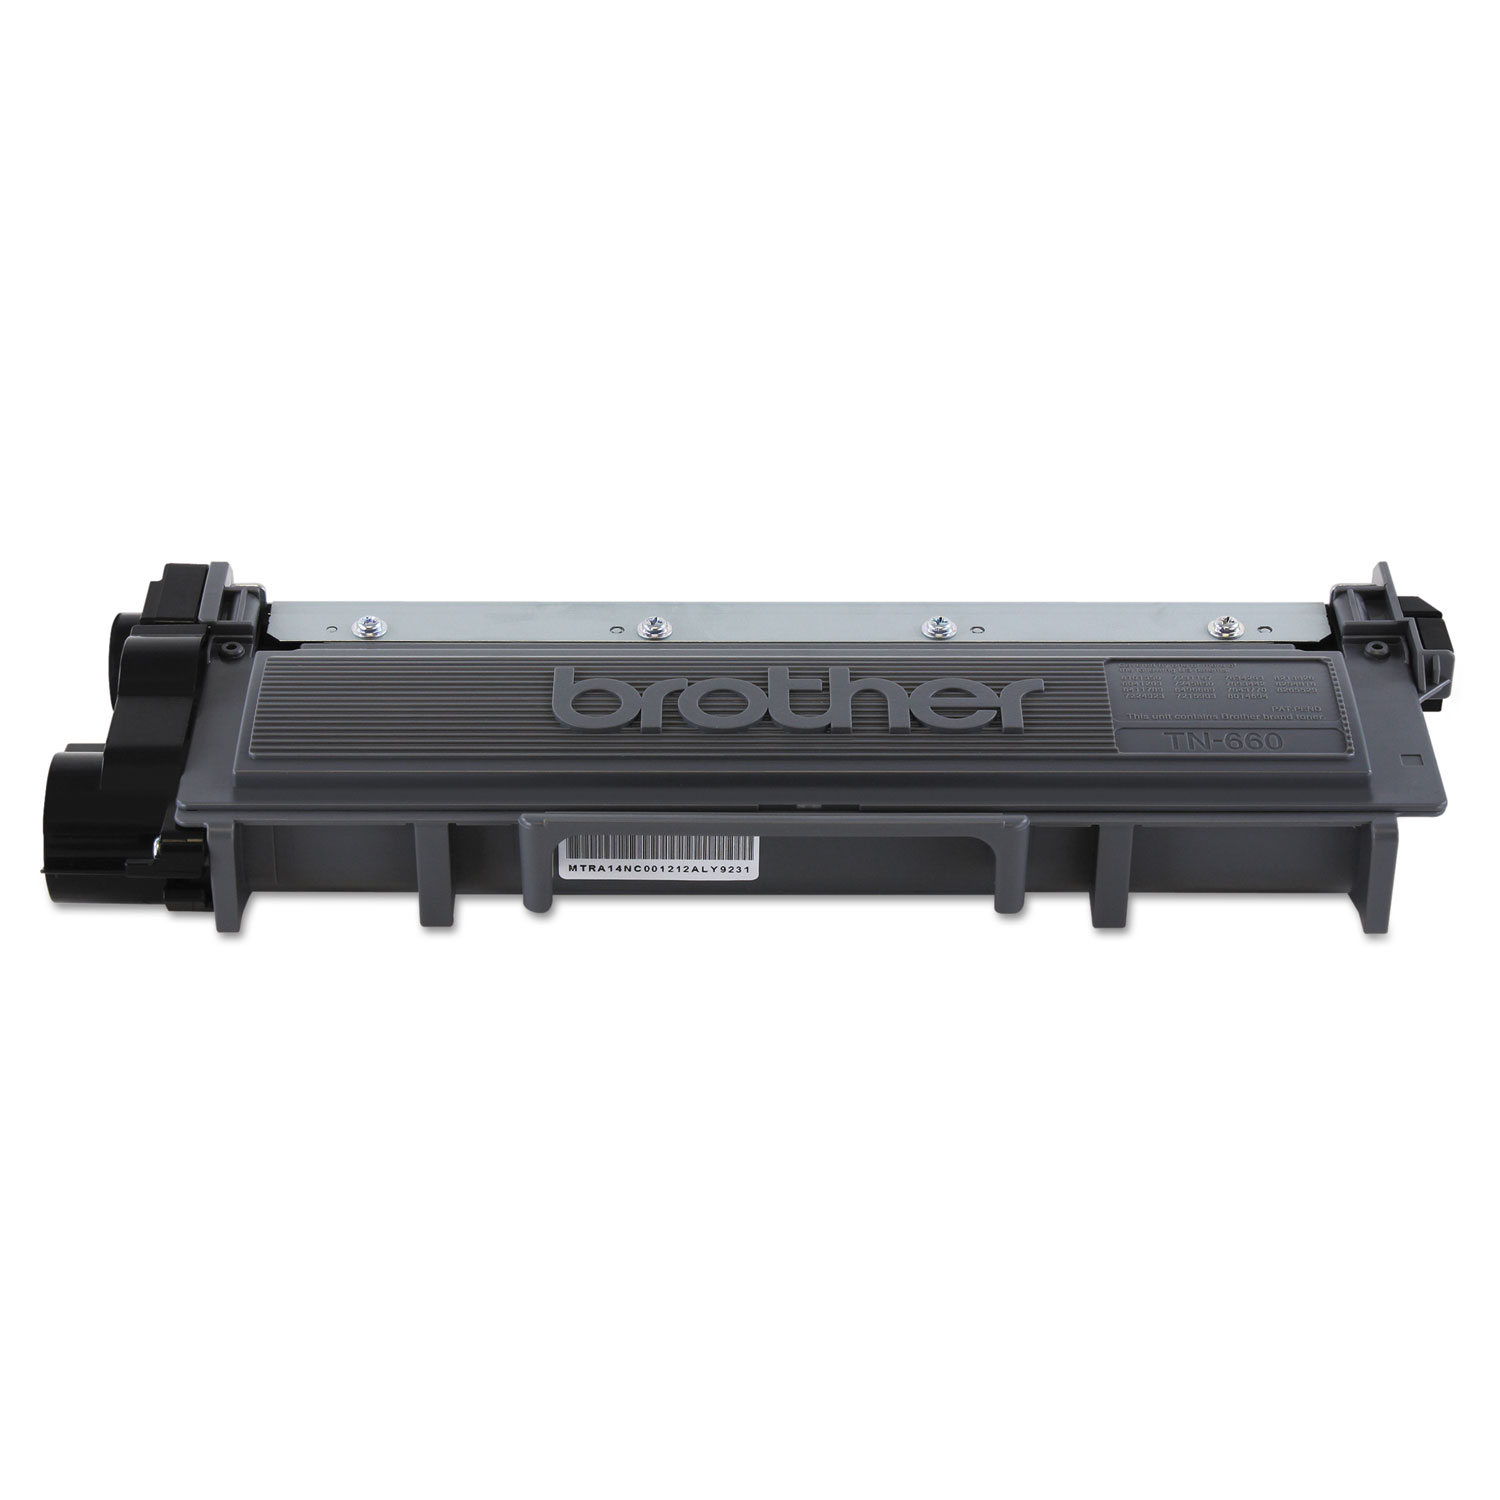 TN660 High-Yield Toner, 2600 Page-Yield, Black